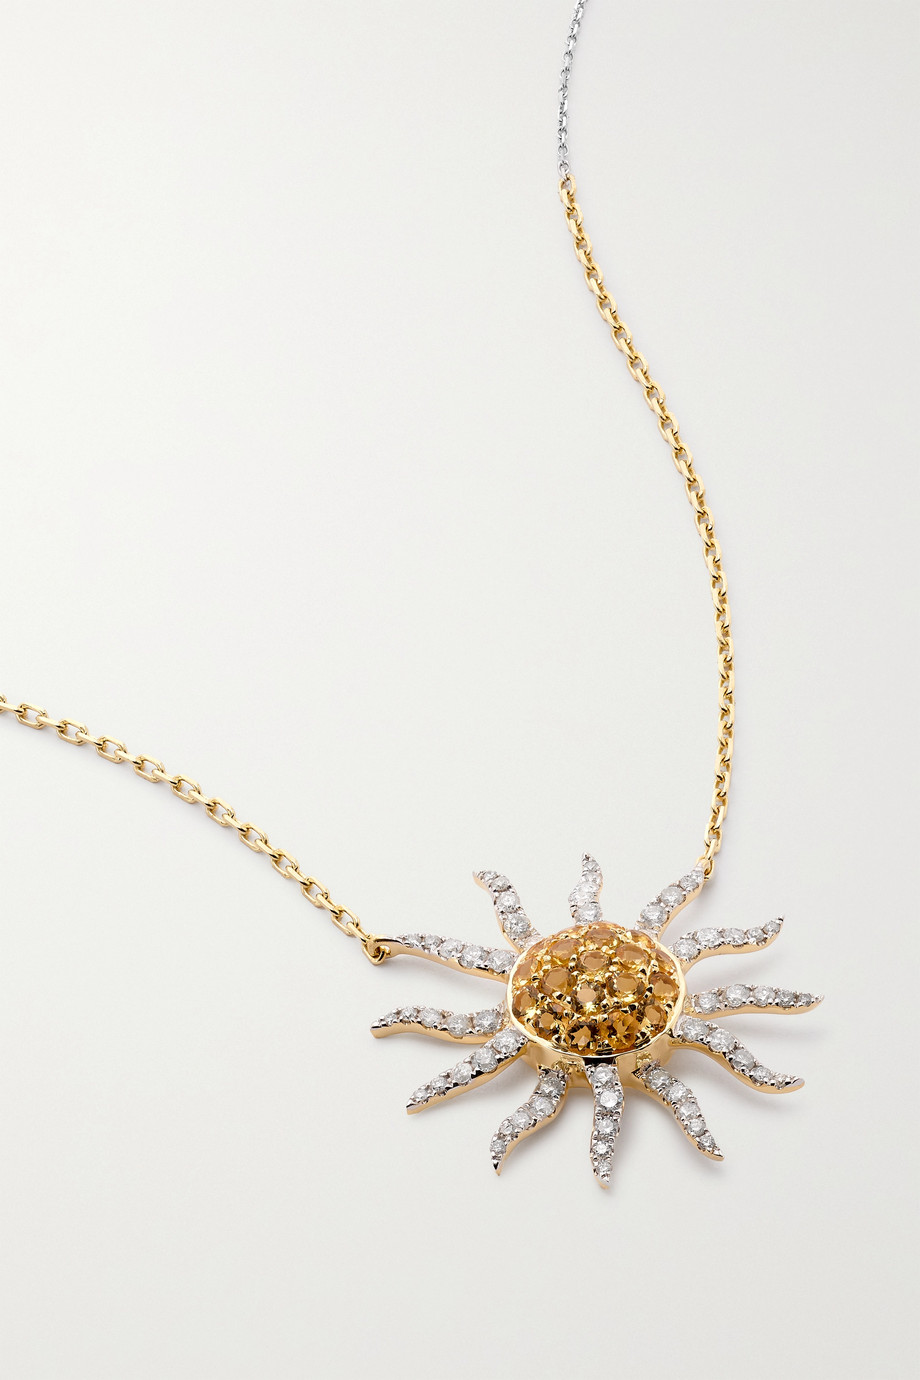 Yvonne Léon Collier Soleil 18-karat white and yellow gold, diamond and citrine necklace